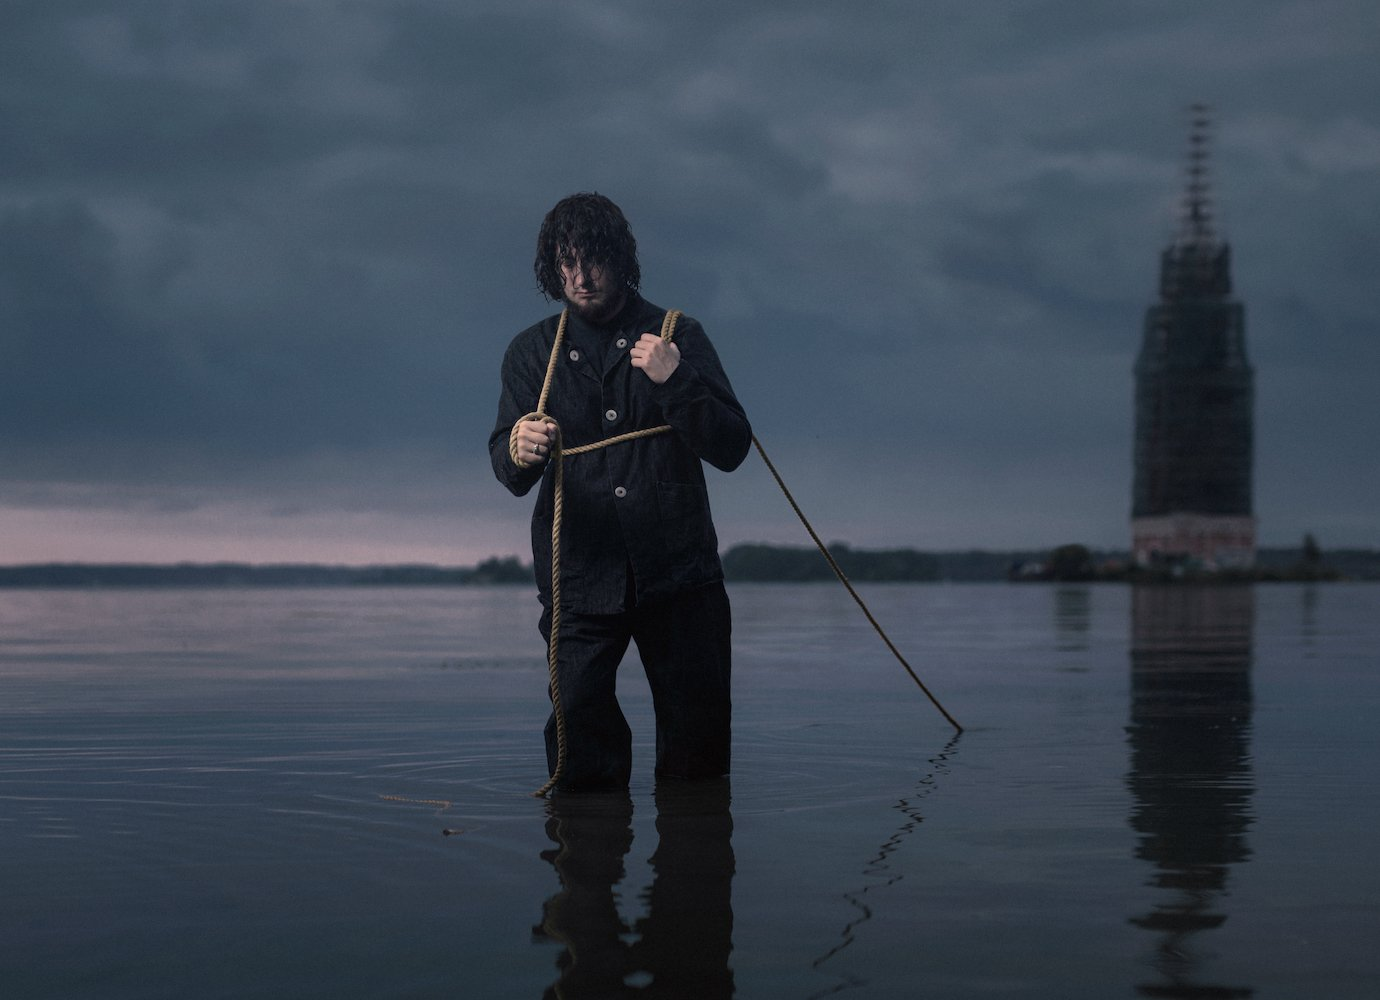 A Russian menswear brand pays tribute to the Volga's vanished barge haulers